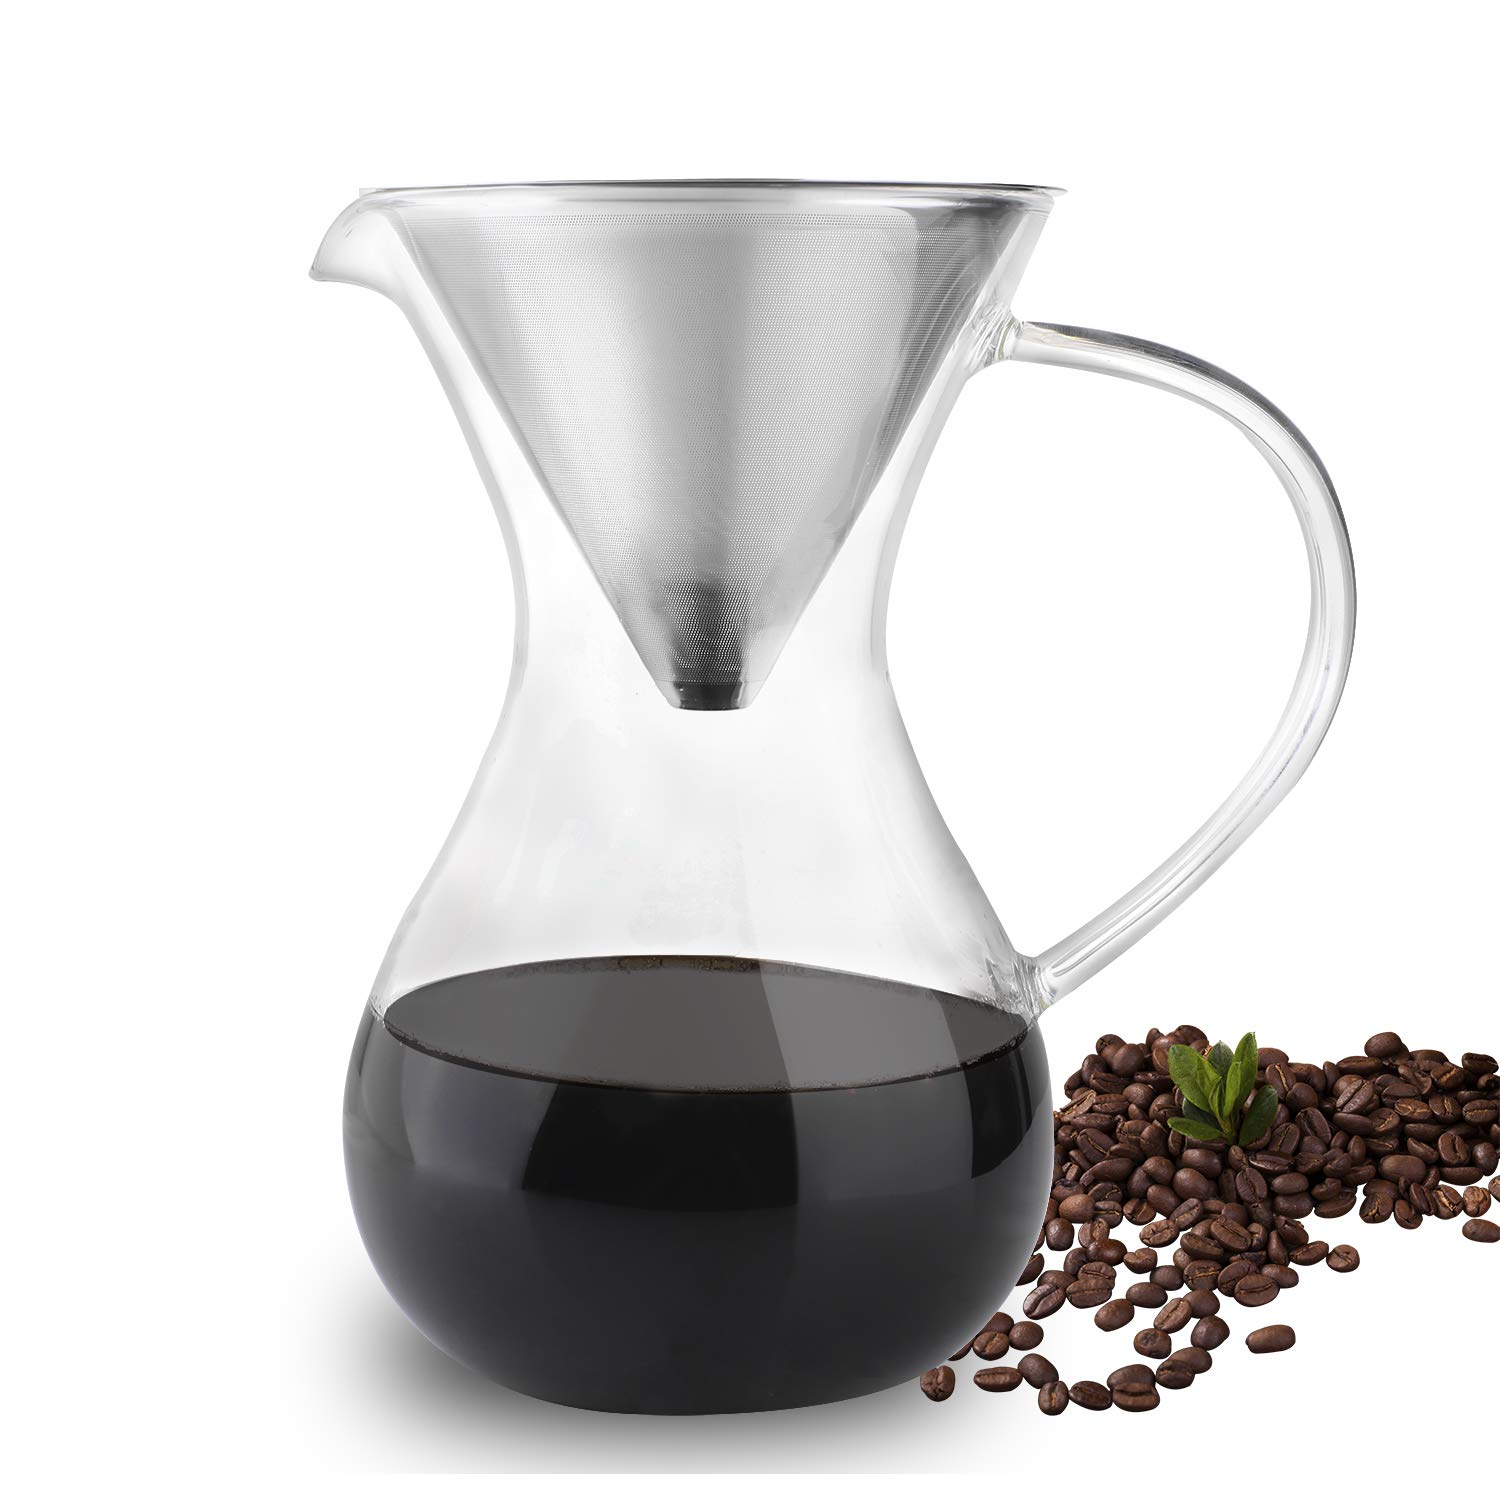 Phyismor Pour Over Coffee Maker with Stainless Steel Filter, Coffee Drip Dripper Brewer Pitcher, Borosilicate Glass Carafe,1 Liter/33 oz, for Hand Made Manual Coffee by Phyismor